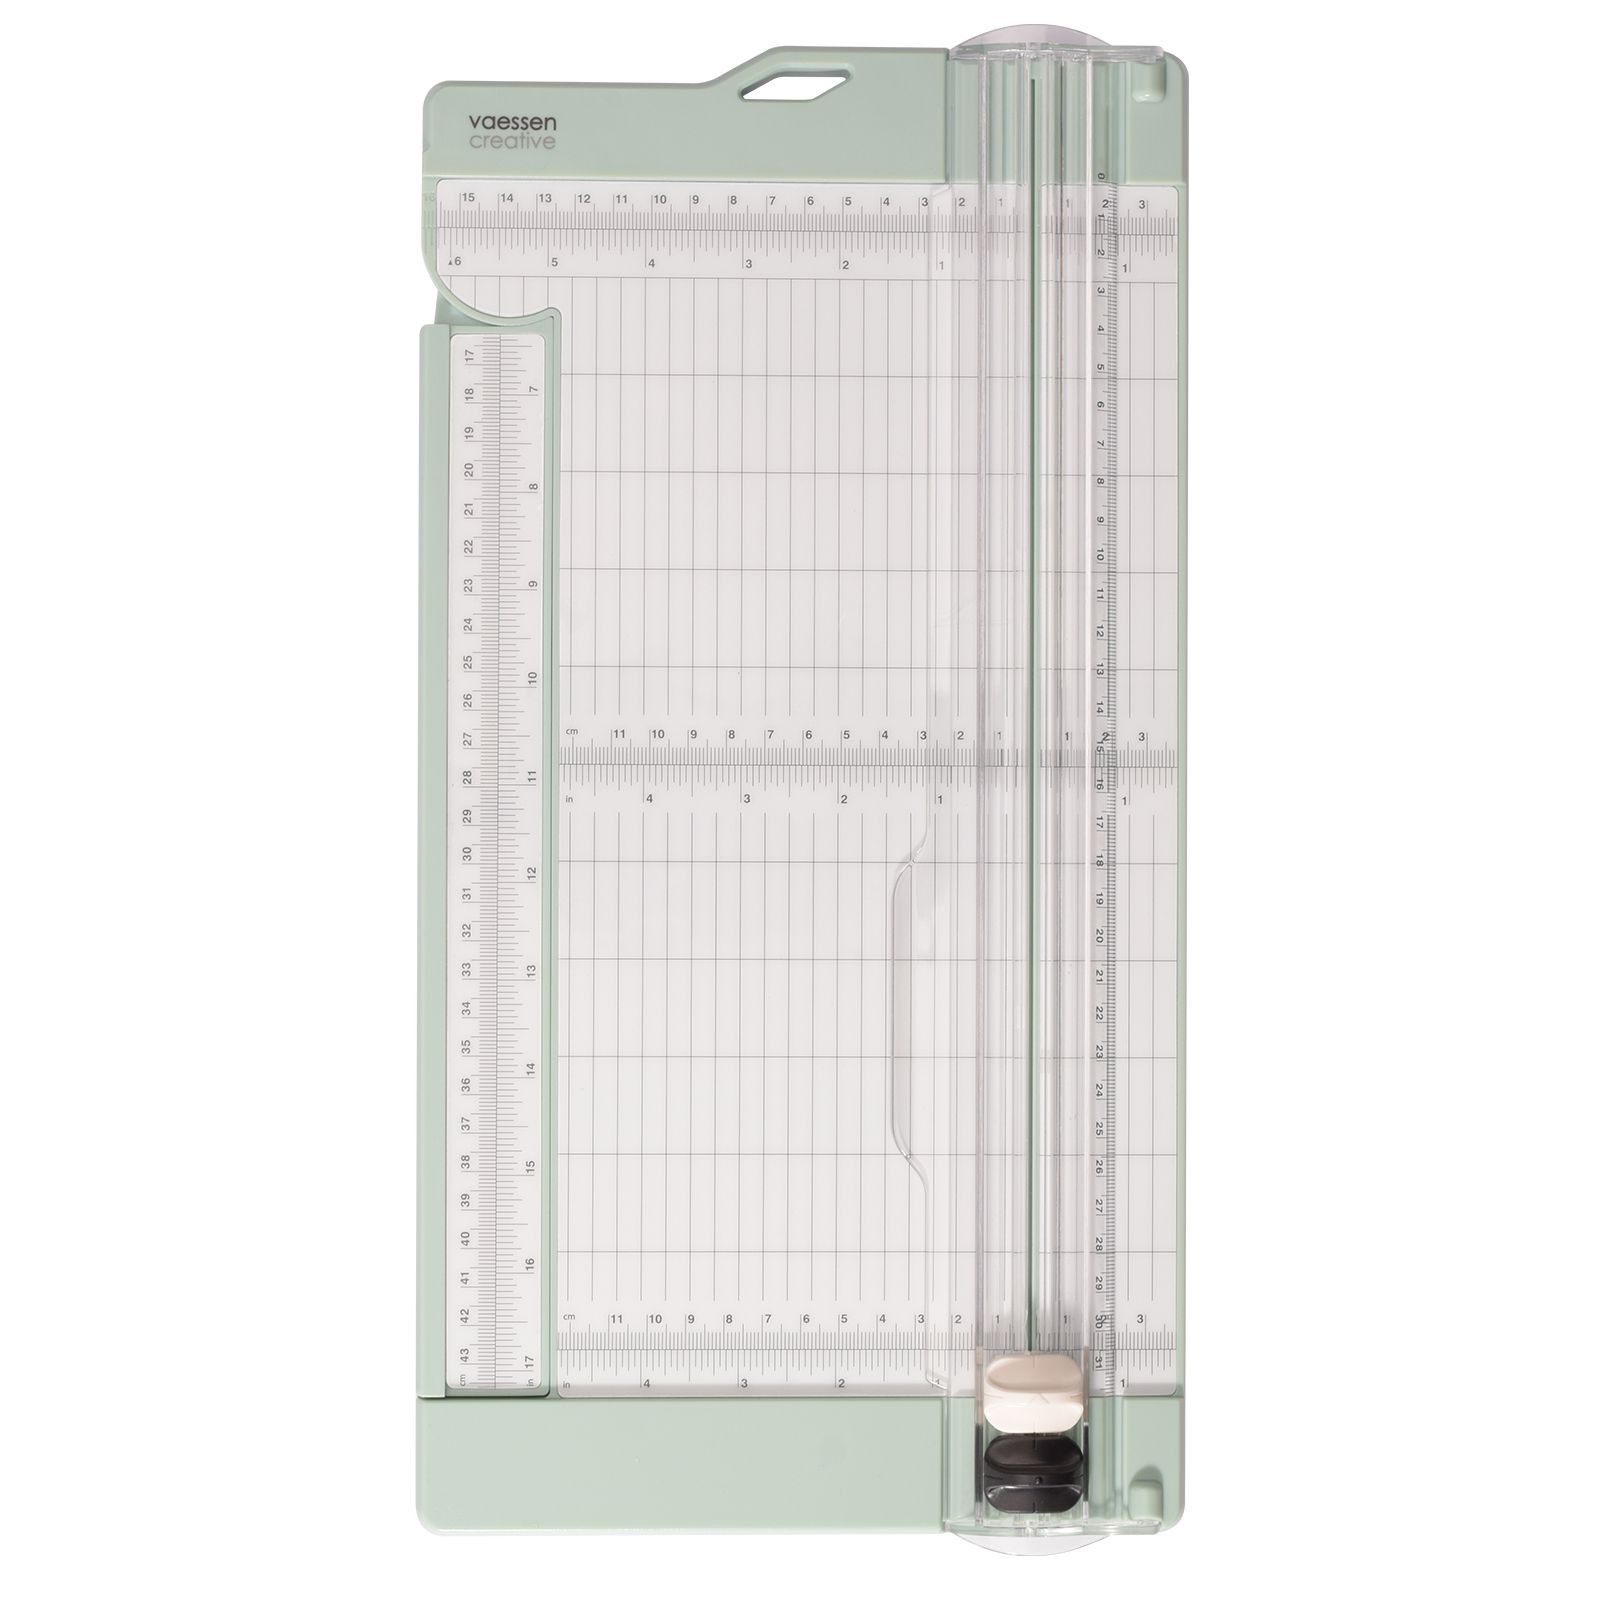 Vaessen Creative - Paper cutter with scoring tool 15x30.5cm mint